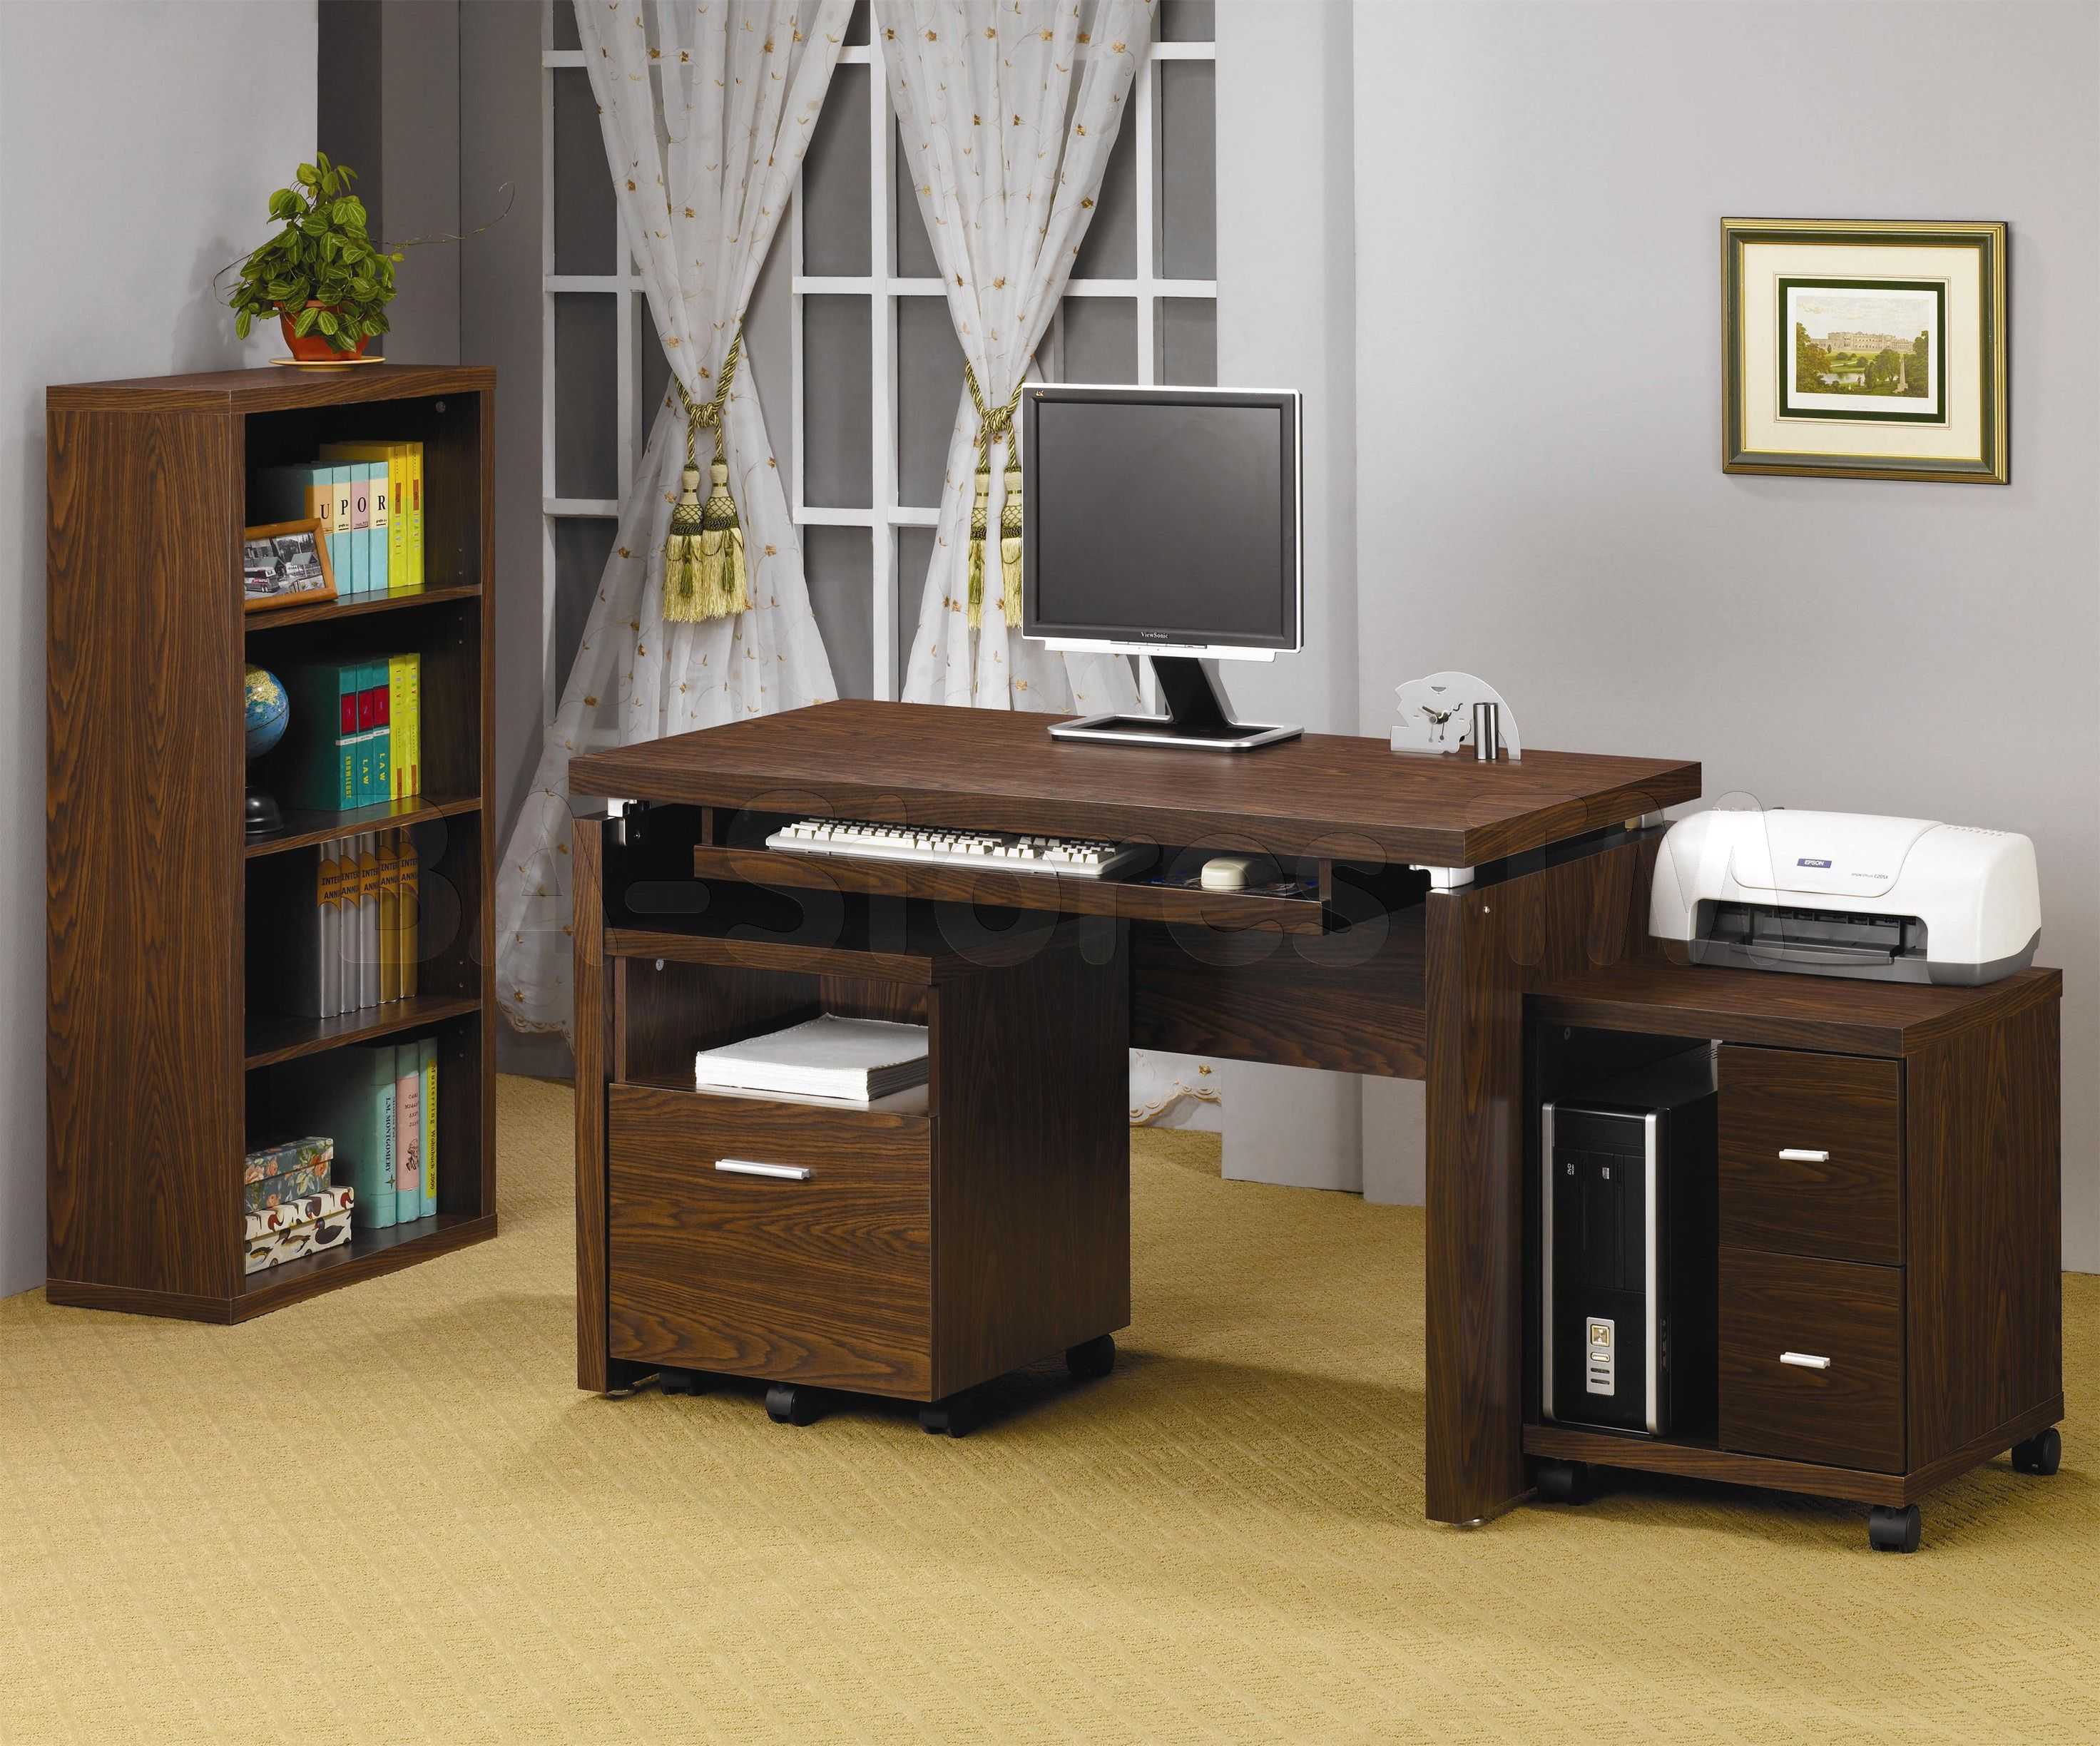 victorian unique desk home with fice small elegant drawers attachment of desks trend storage luxury